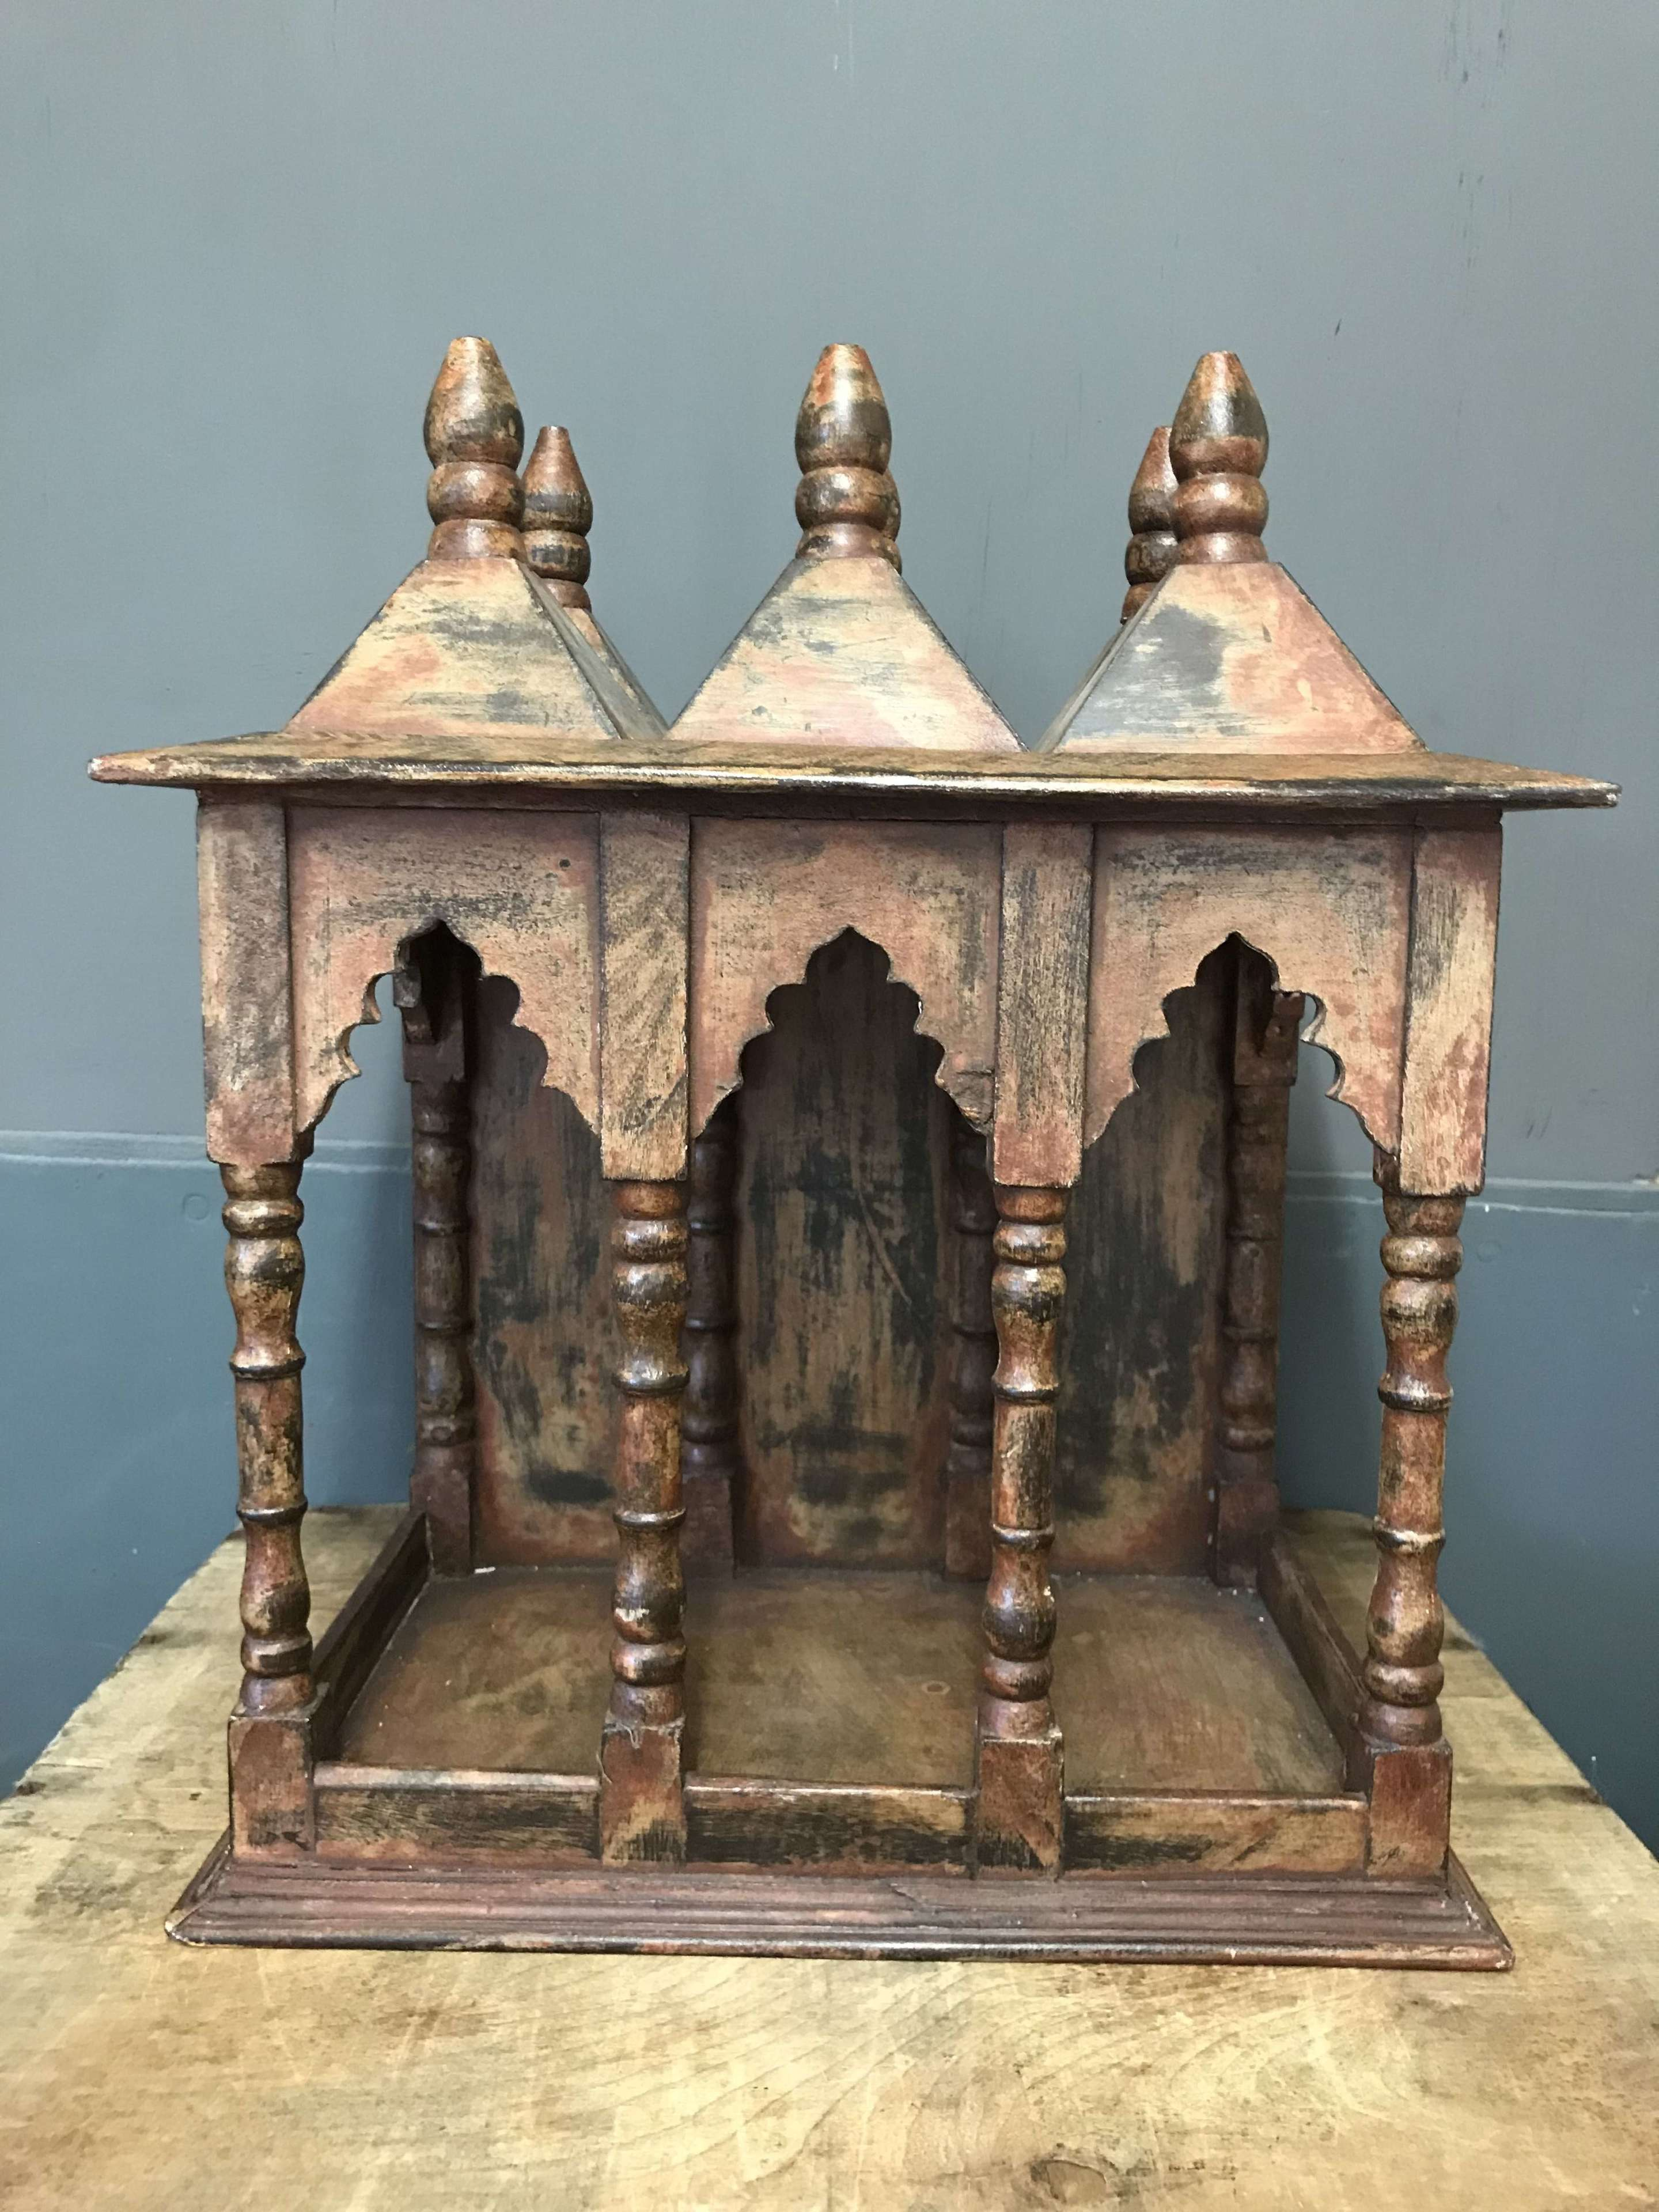 Wooden model of an Indian Temple